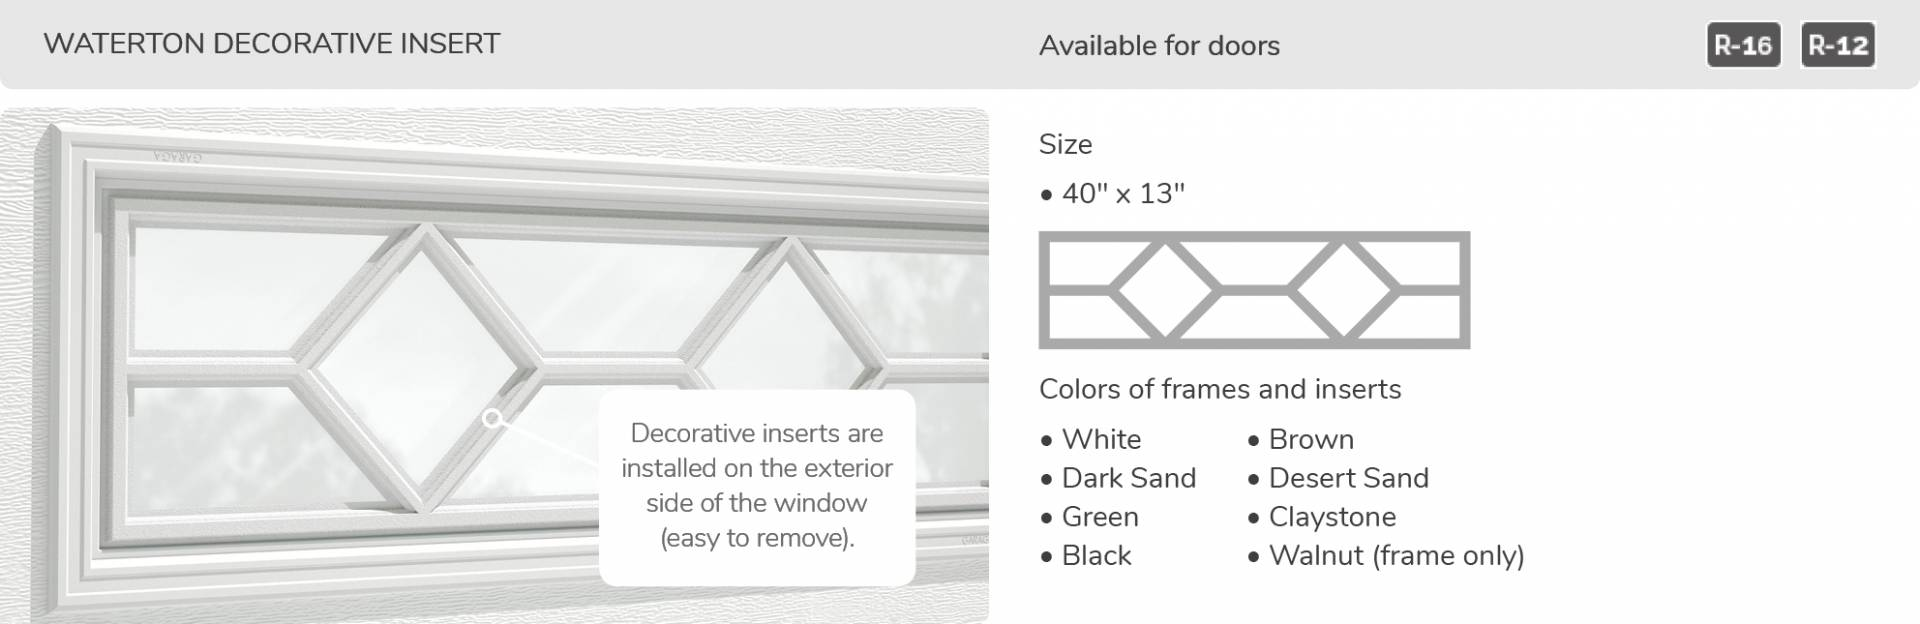 Waterton Decorative Insert, 40' x 13', available for doors R-16 and R-12